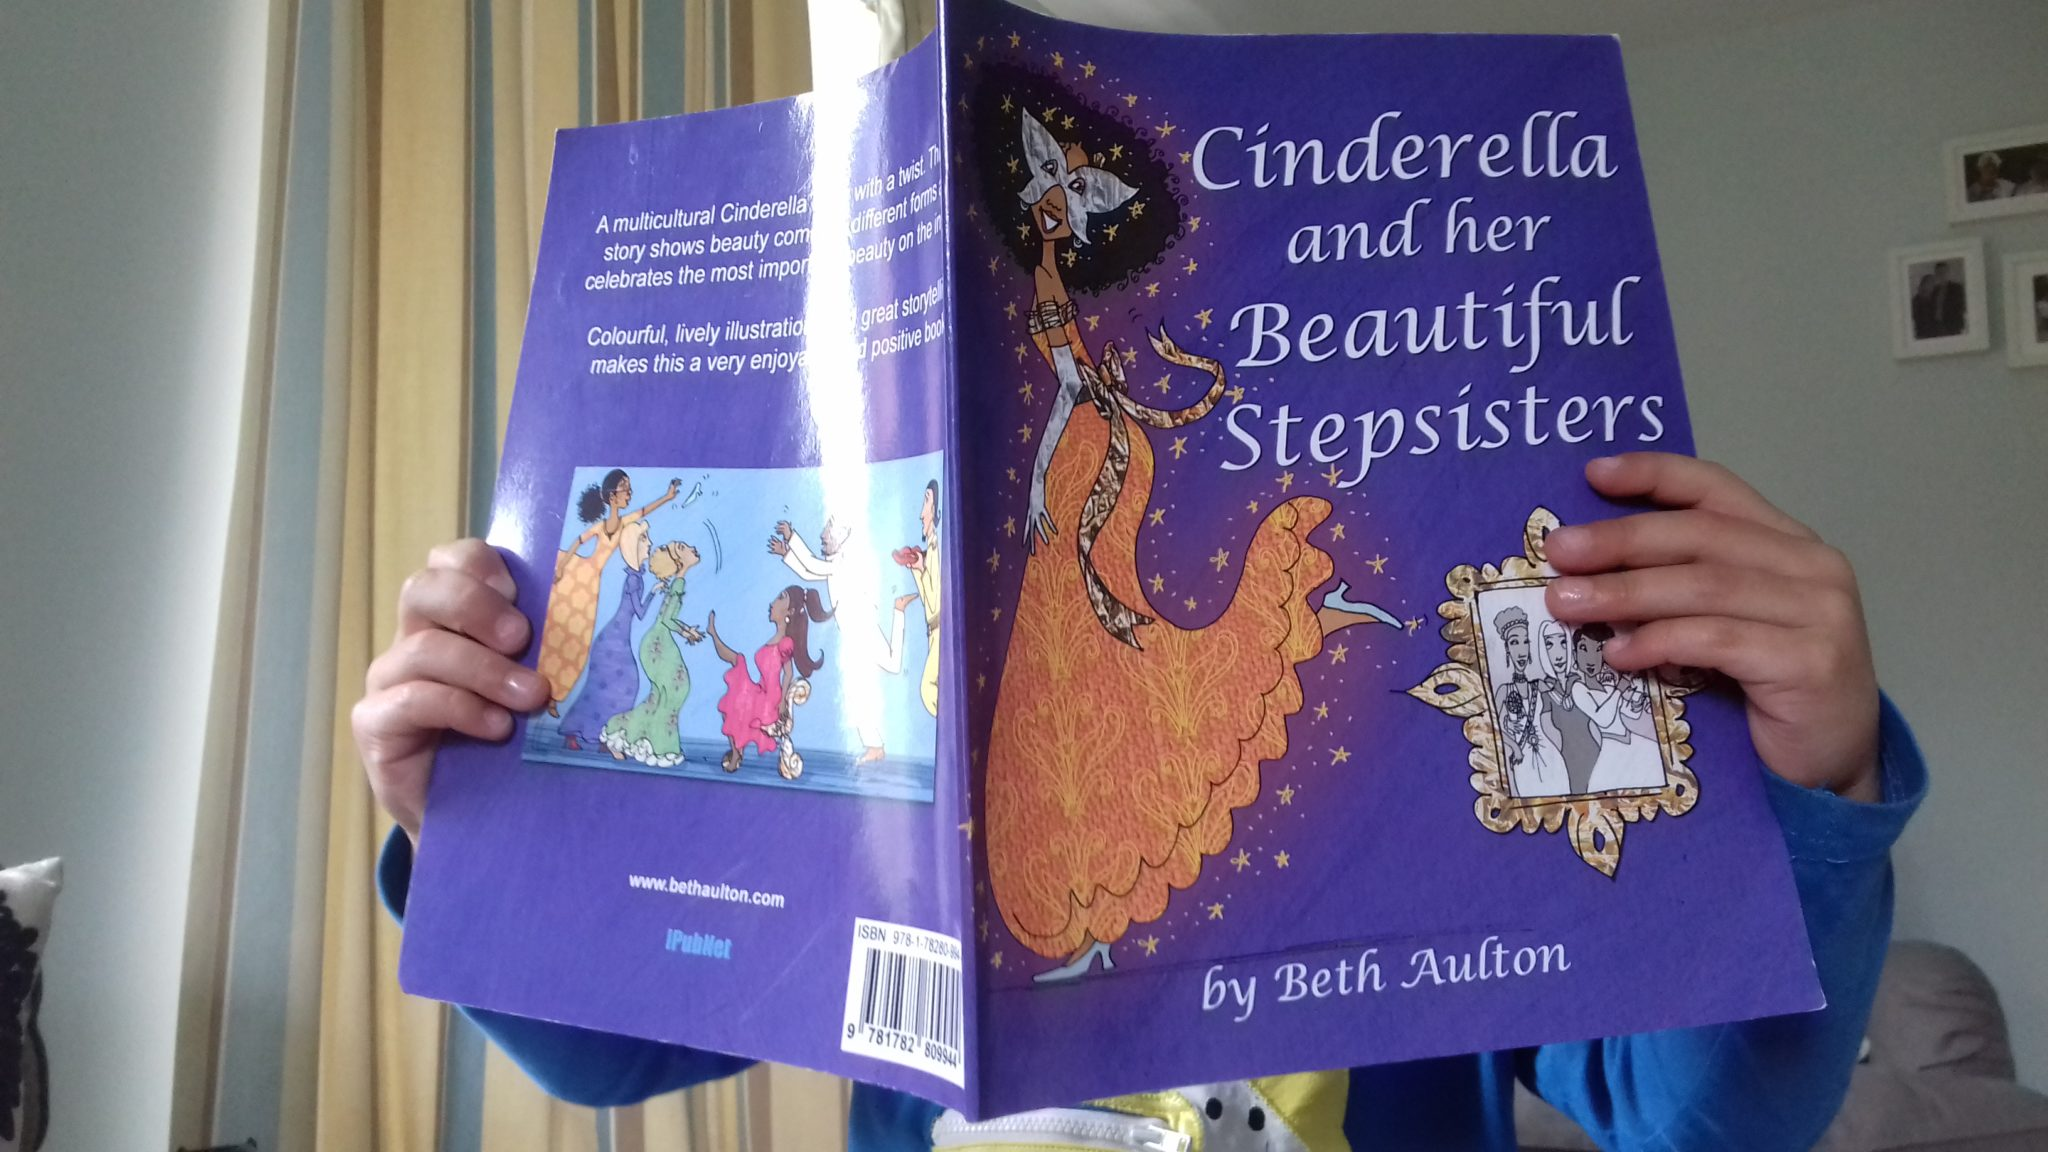 Cinderella and her Beautiful Stepsisters - Beth Aulton. The best books for kids about race that they need on their bookshelves. in classrooms and in libraries. These 25+ suggestions have all been enjoyed by our family, and are guaranteed to raise healthy discussions about cultural diversity.